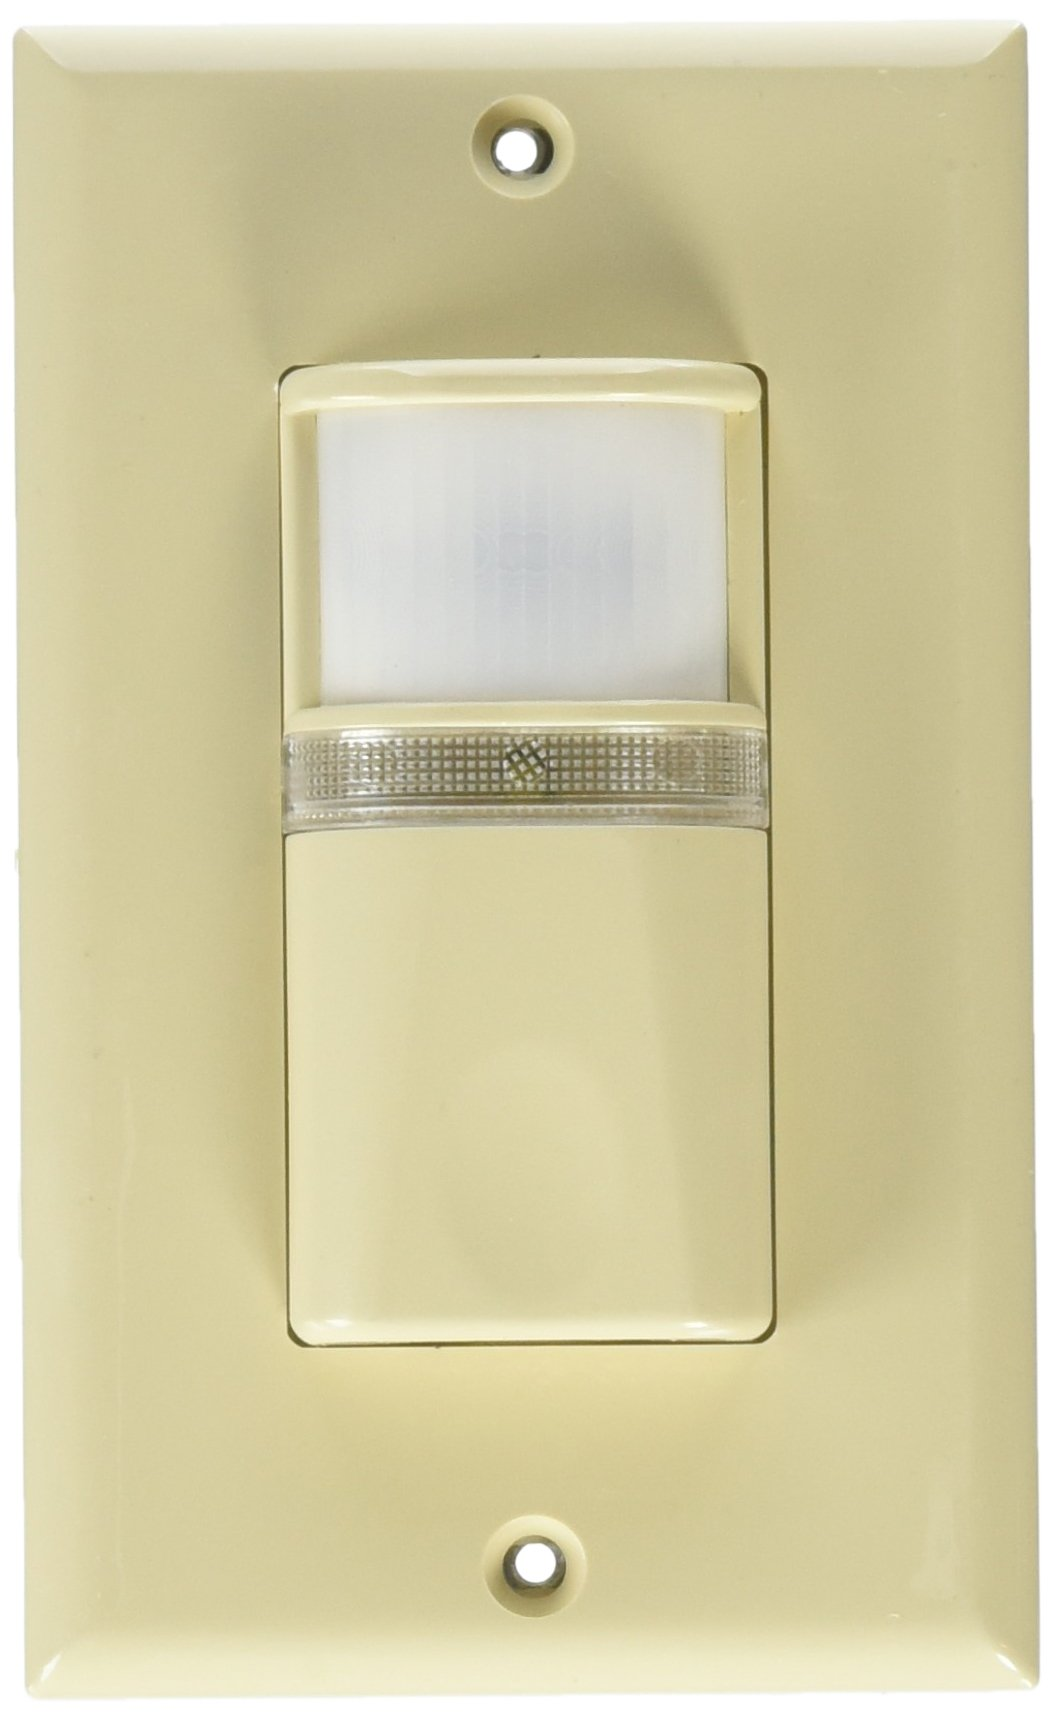 Westgate YM185-I  Vacancy Motion Sensors Wall Switch with Night Light, Title 24 Compliant, Manual ON/Auto OFF, Ivory